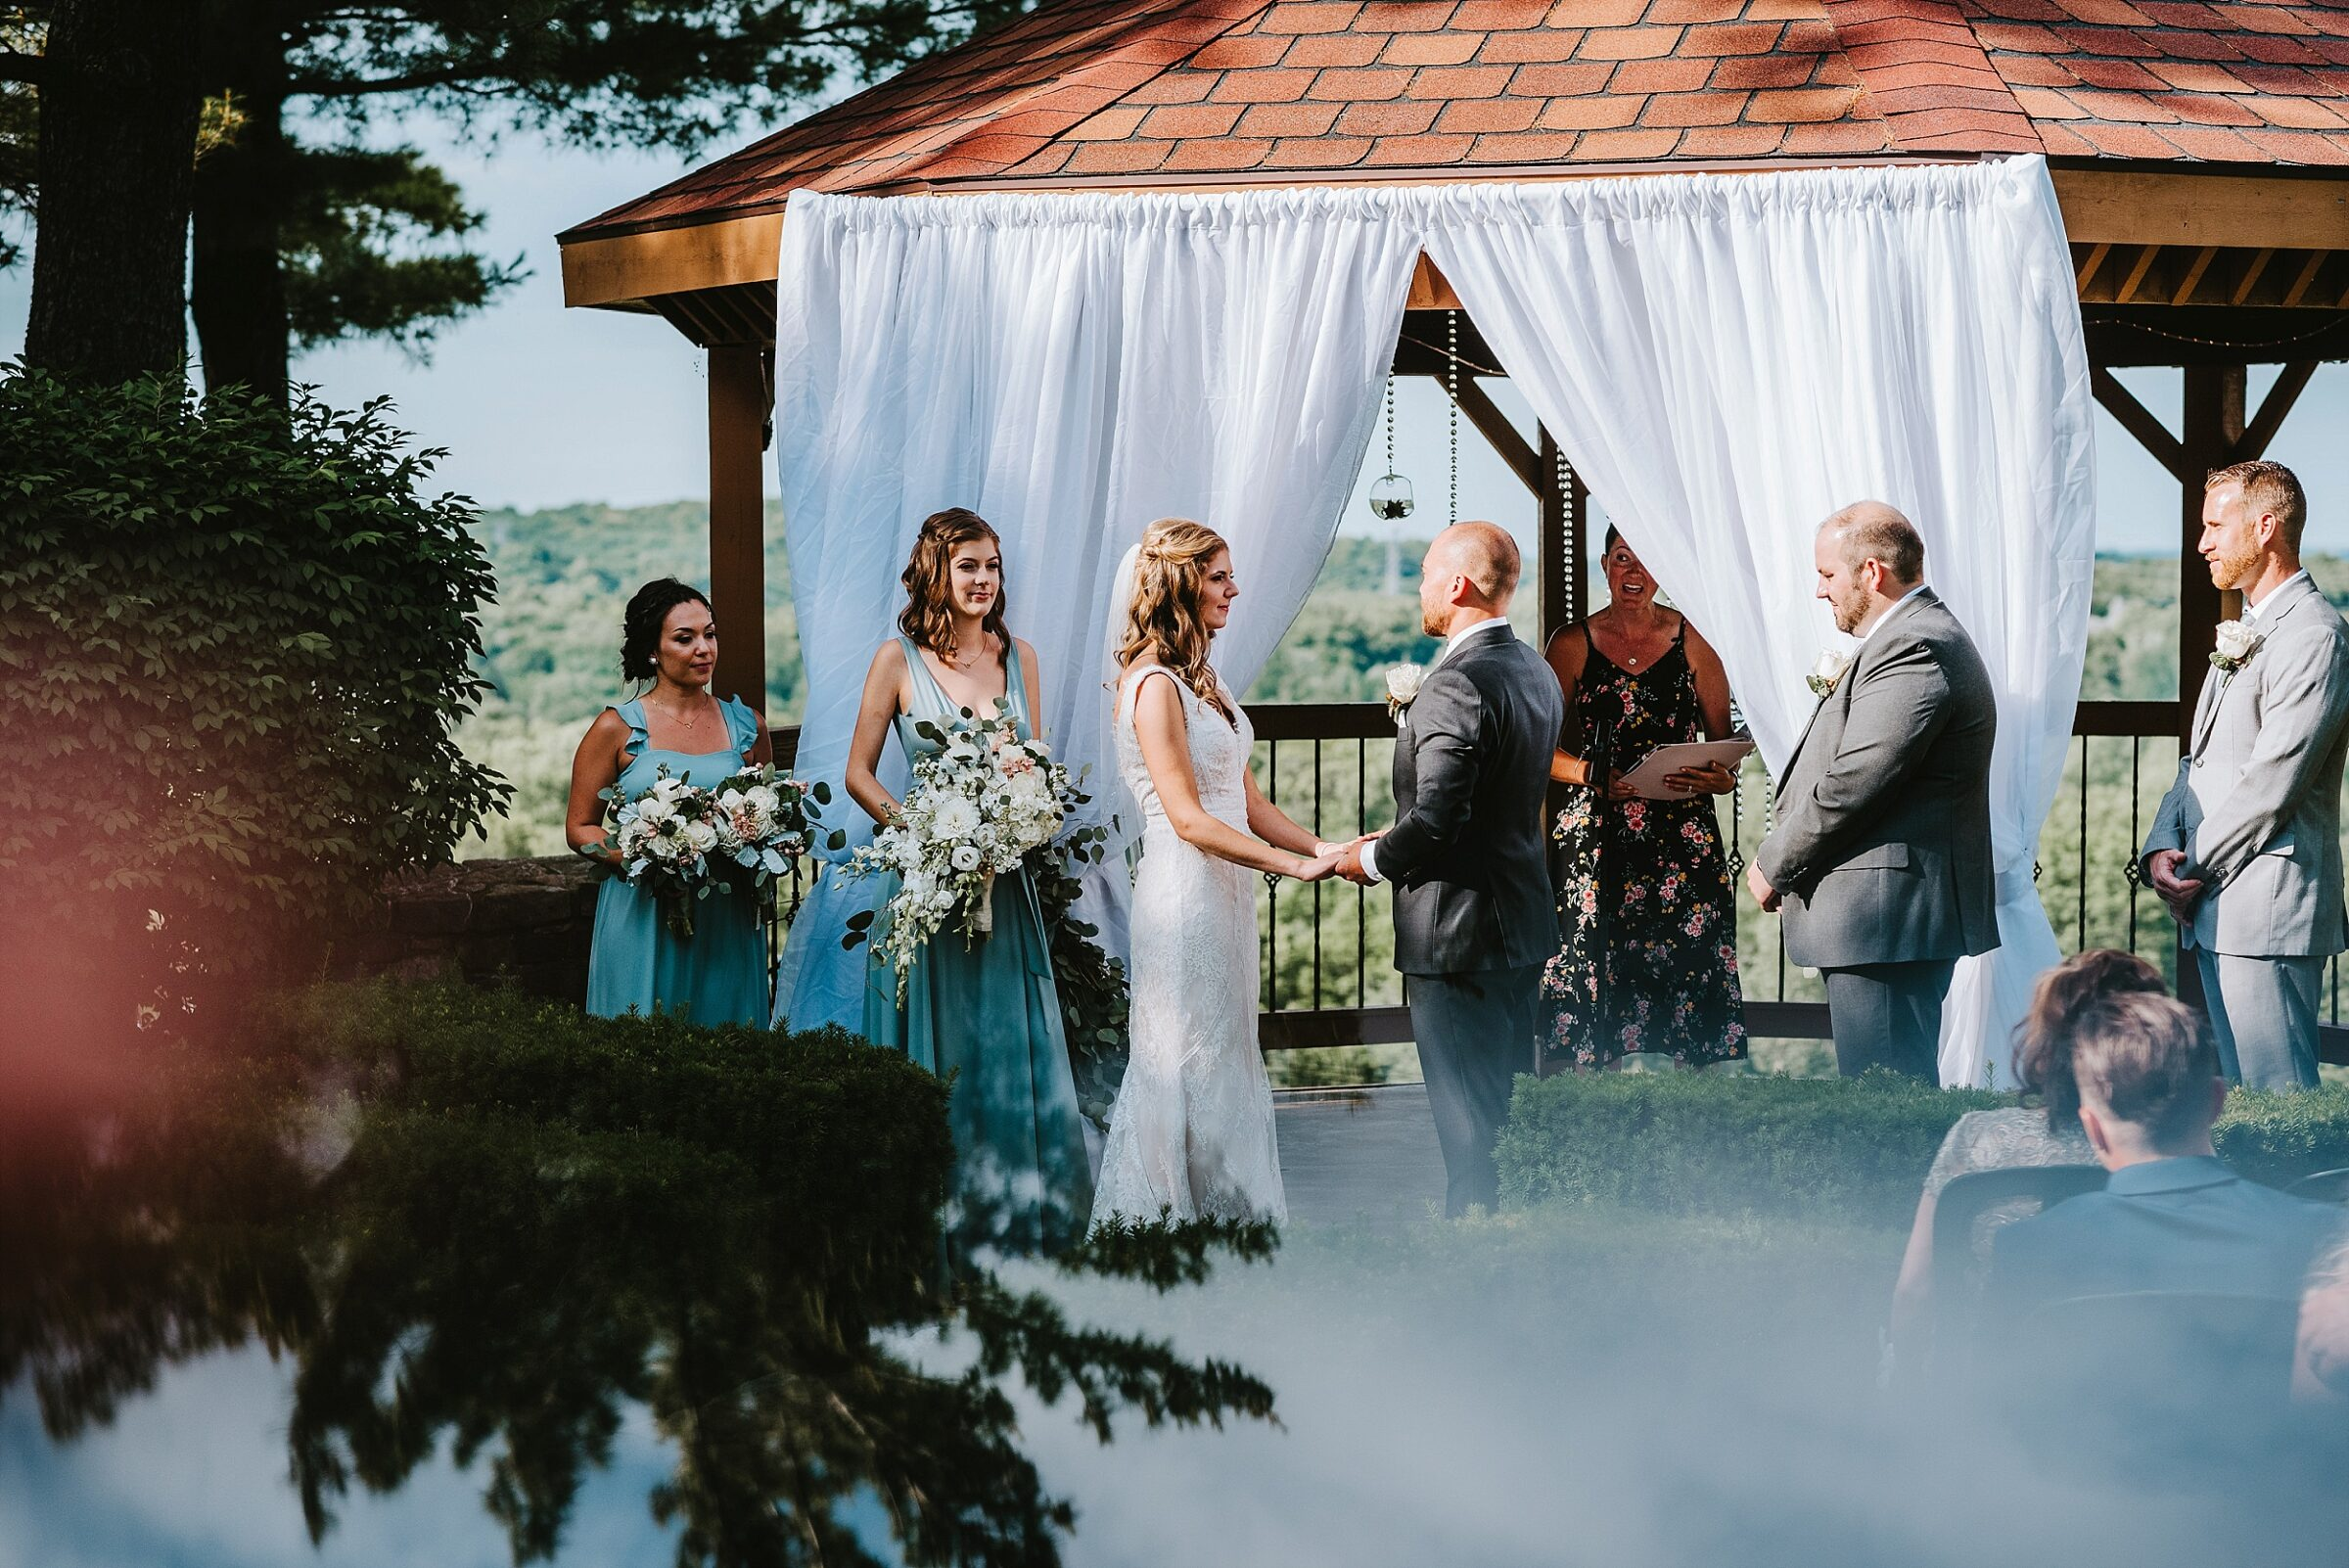 Pine Knob Mansion outdoor ceremony | Clarkston, MI wedding photogaphers